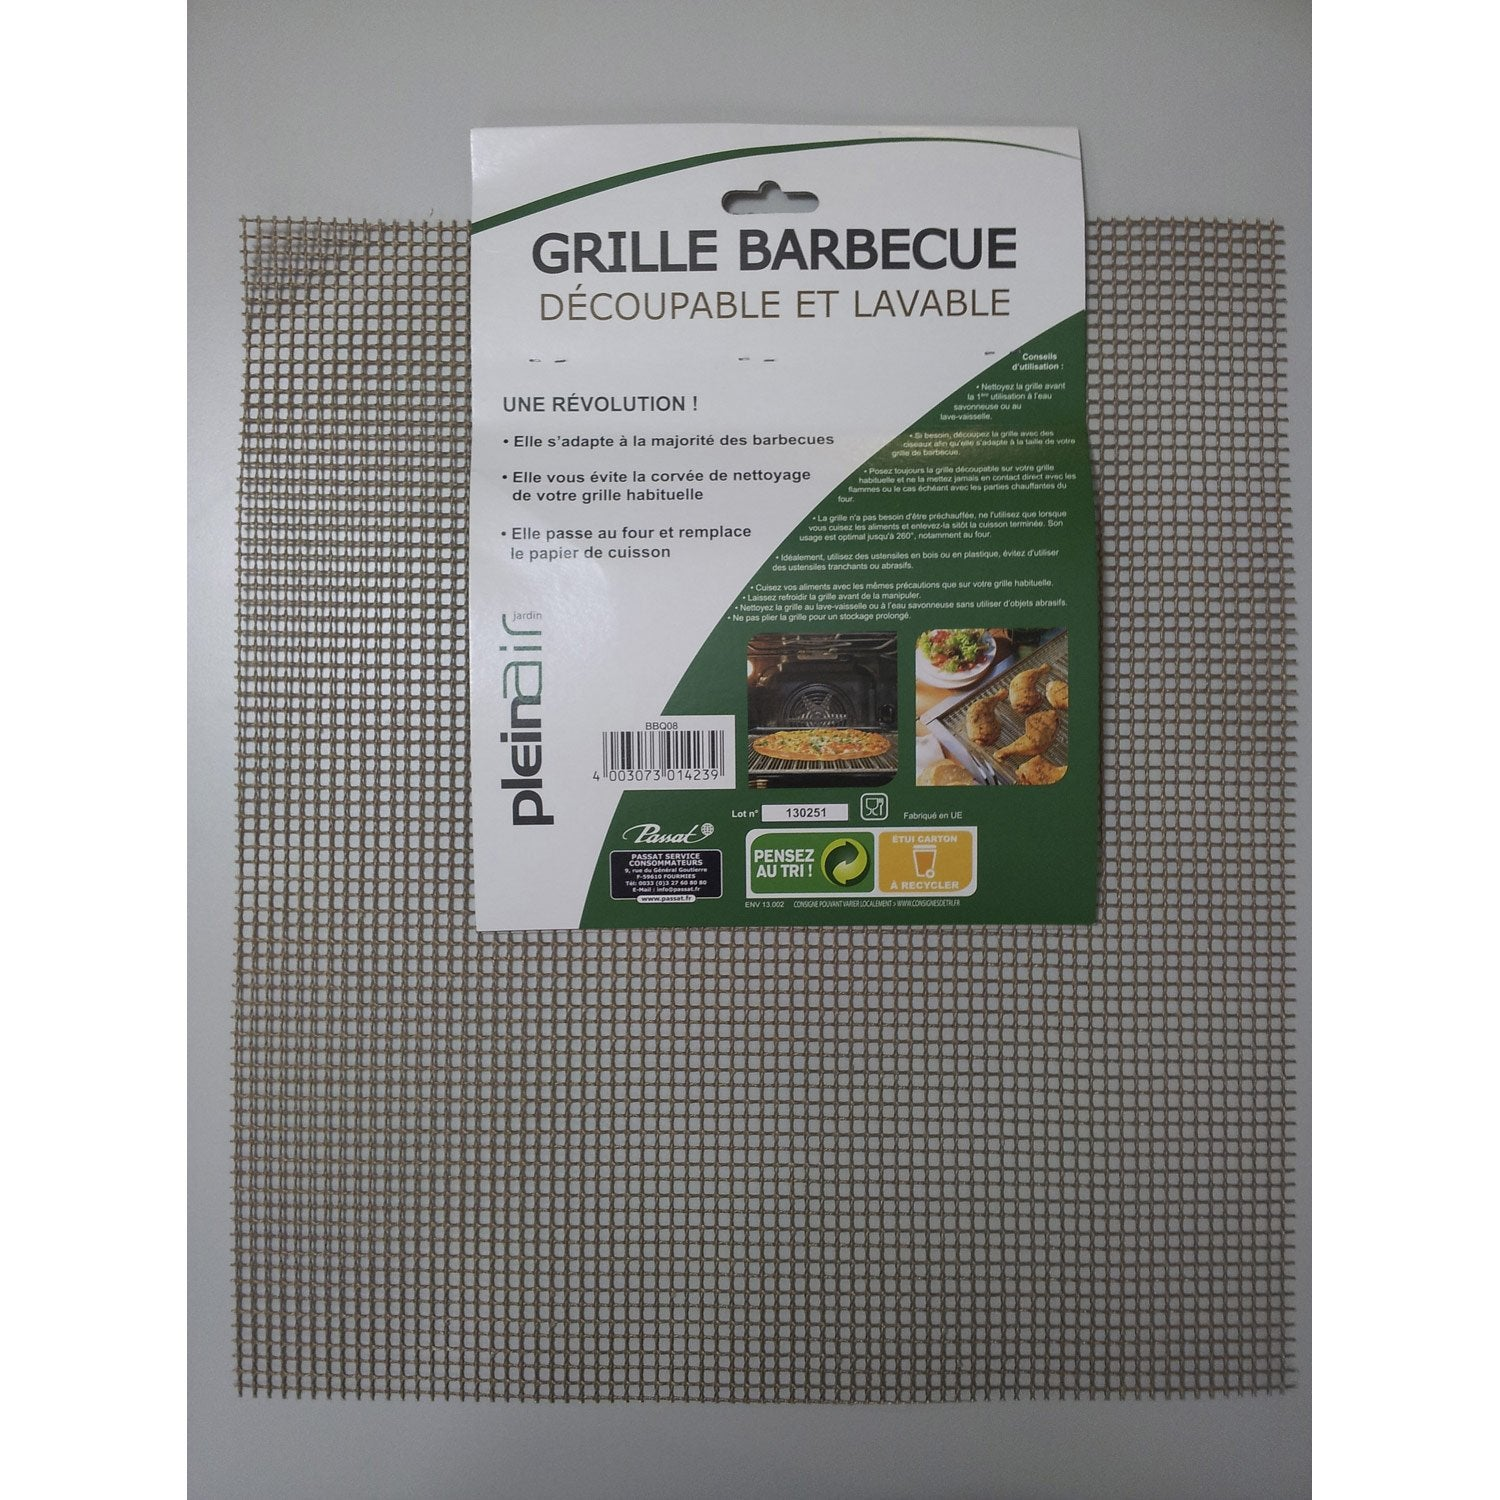 Grille rectangle de barbecue leroy merlin - Grille de barbecue en inox ...